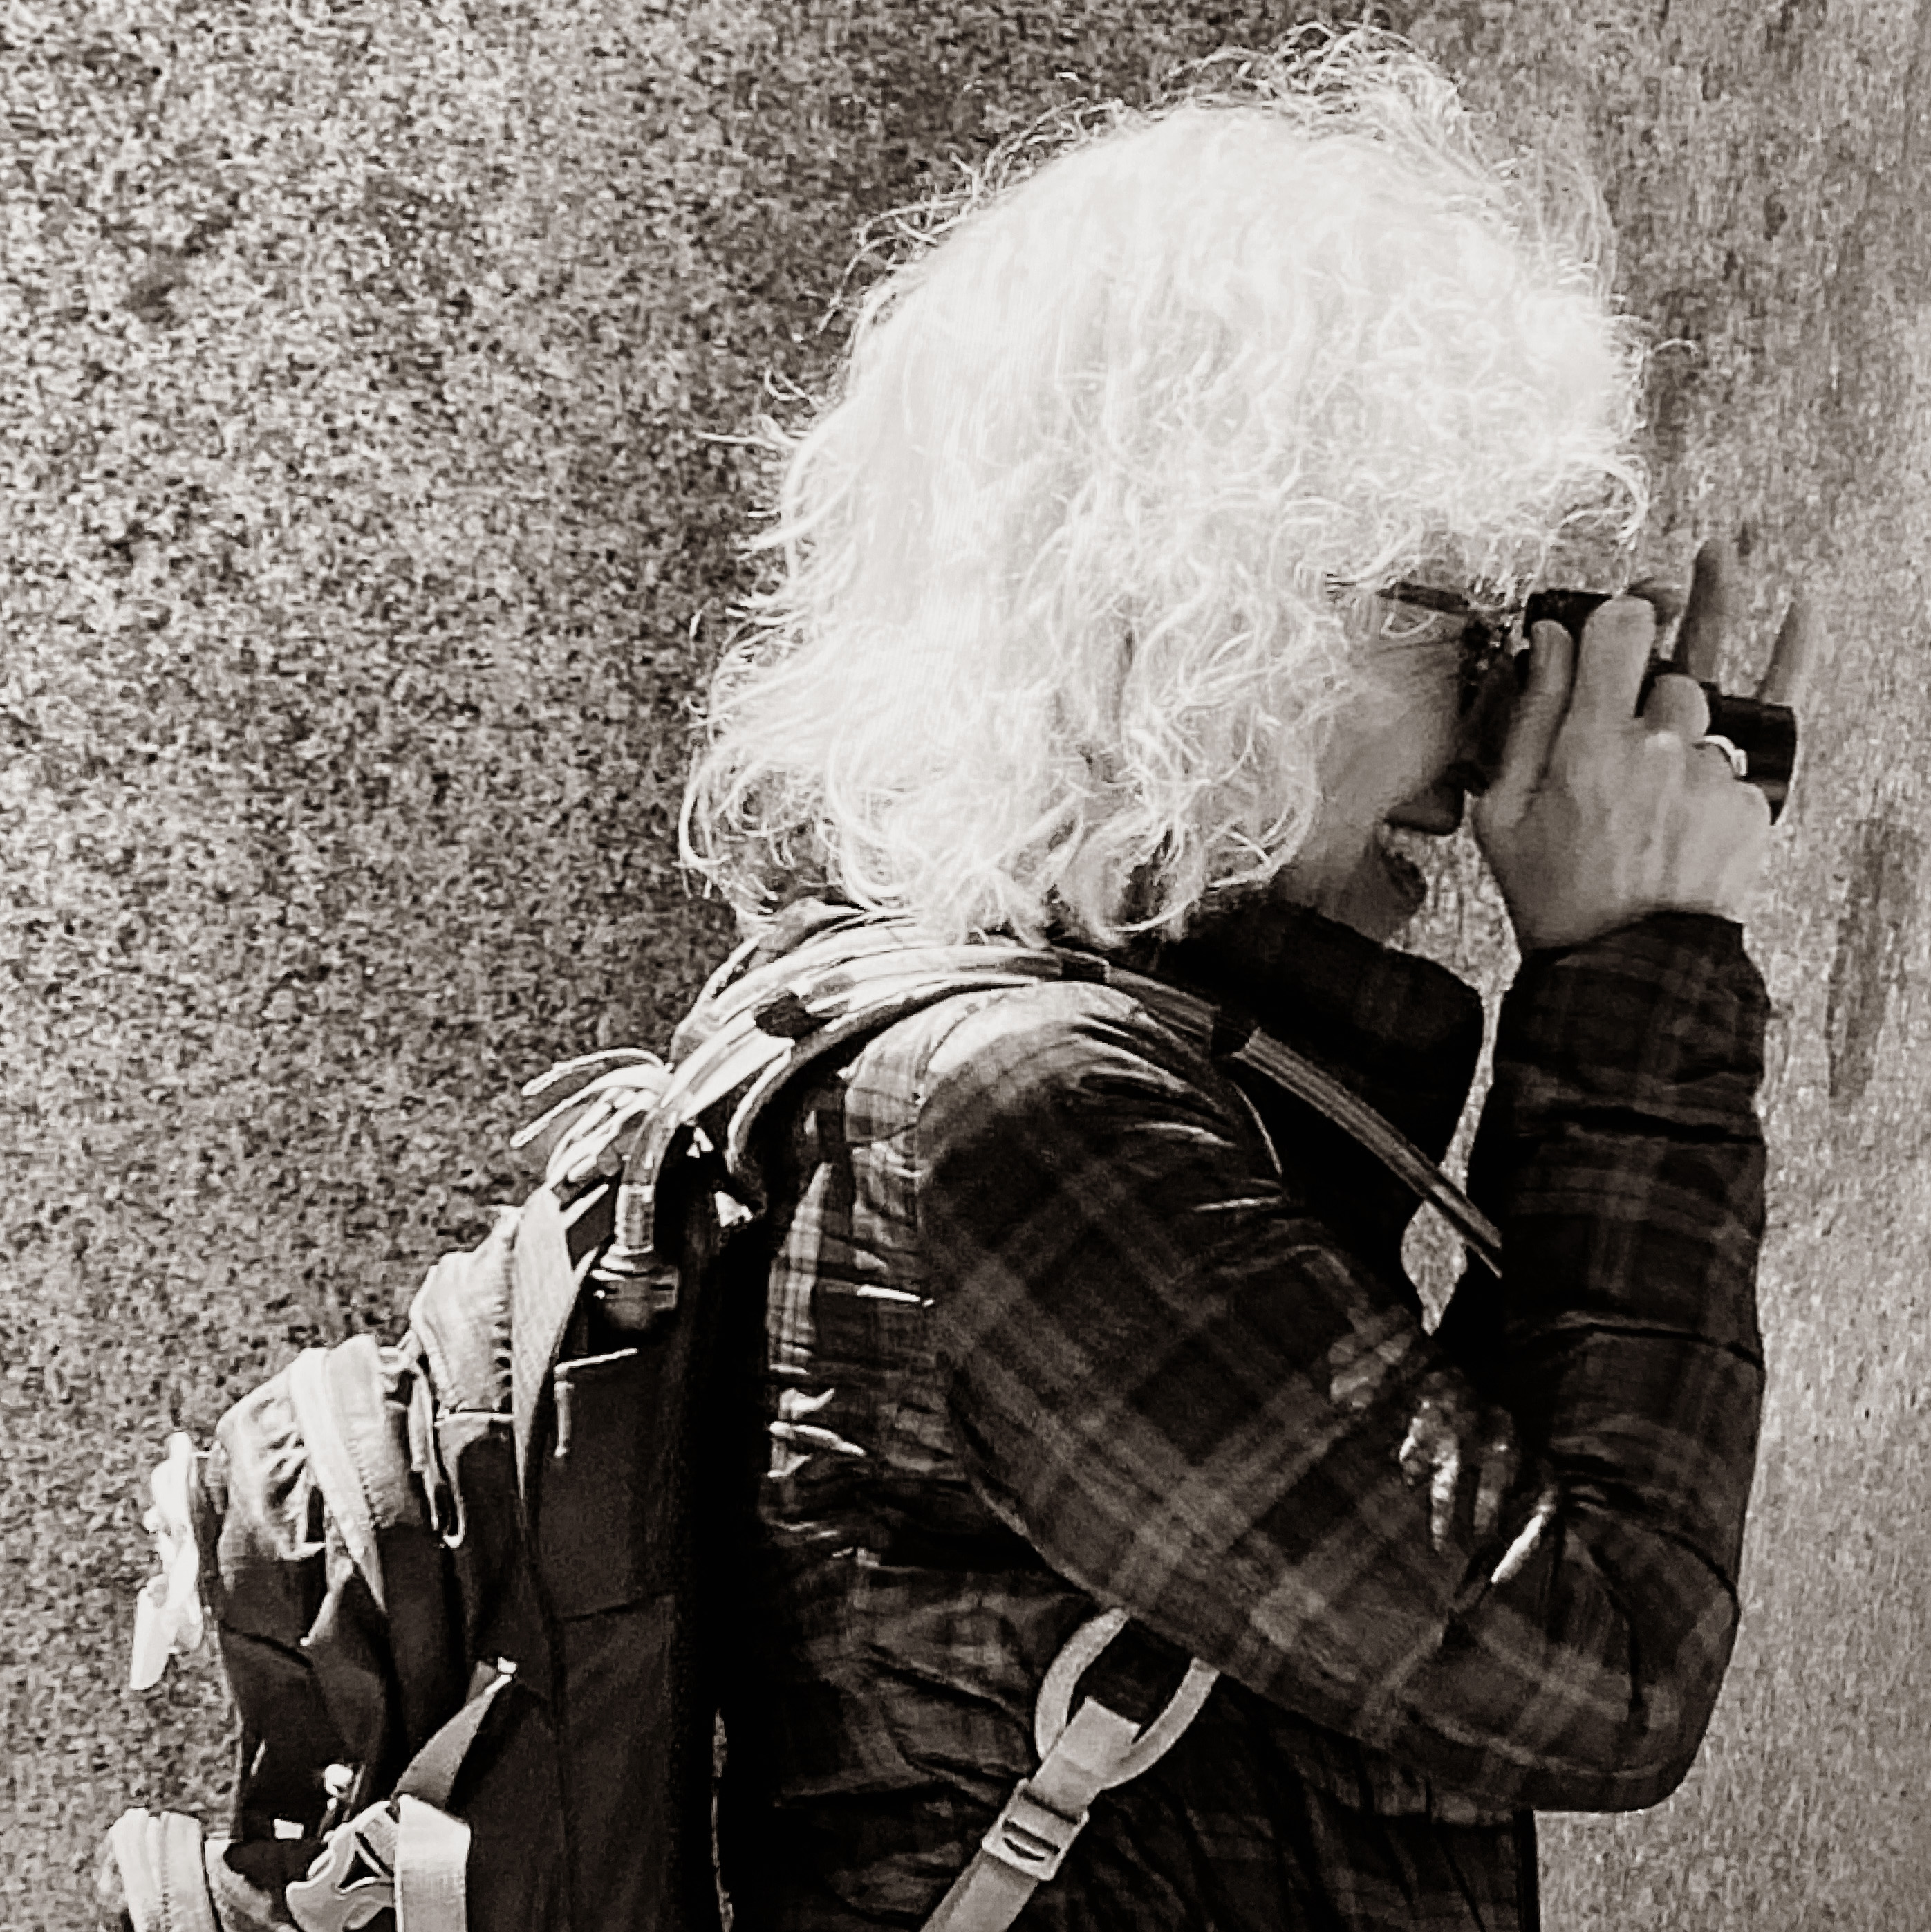 Donna Bassin photographing with camera as artist portrait